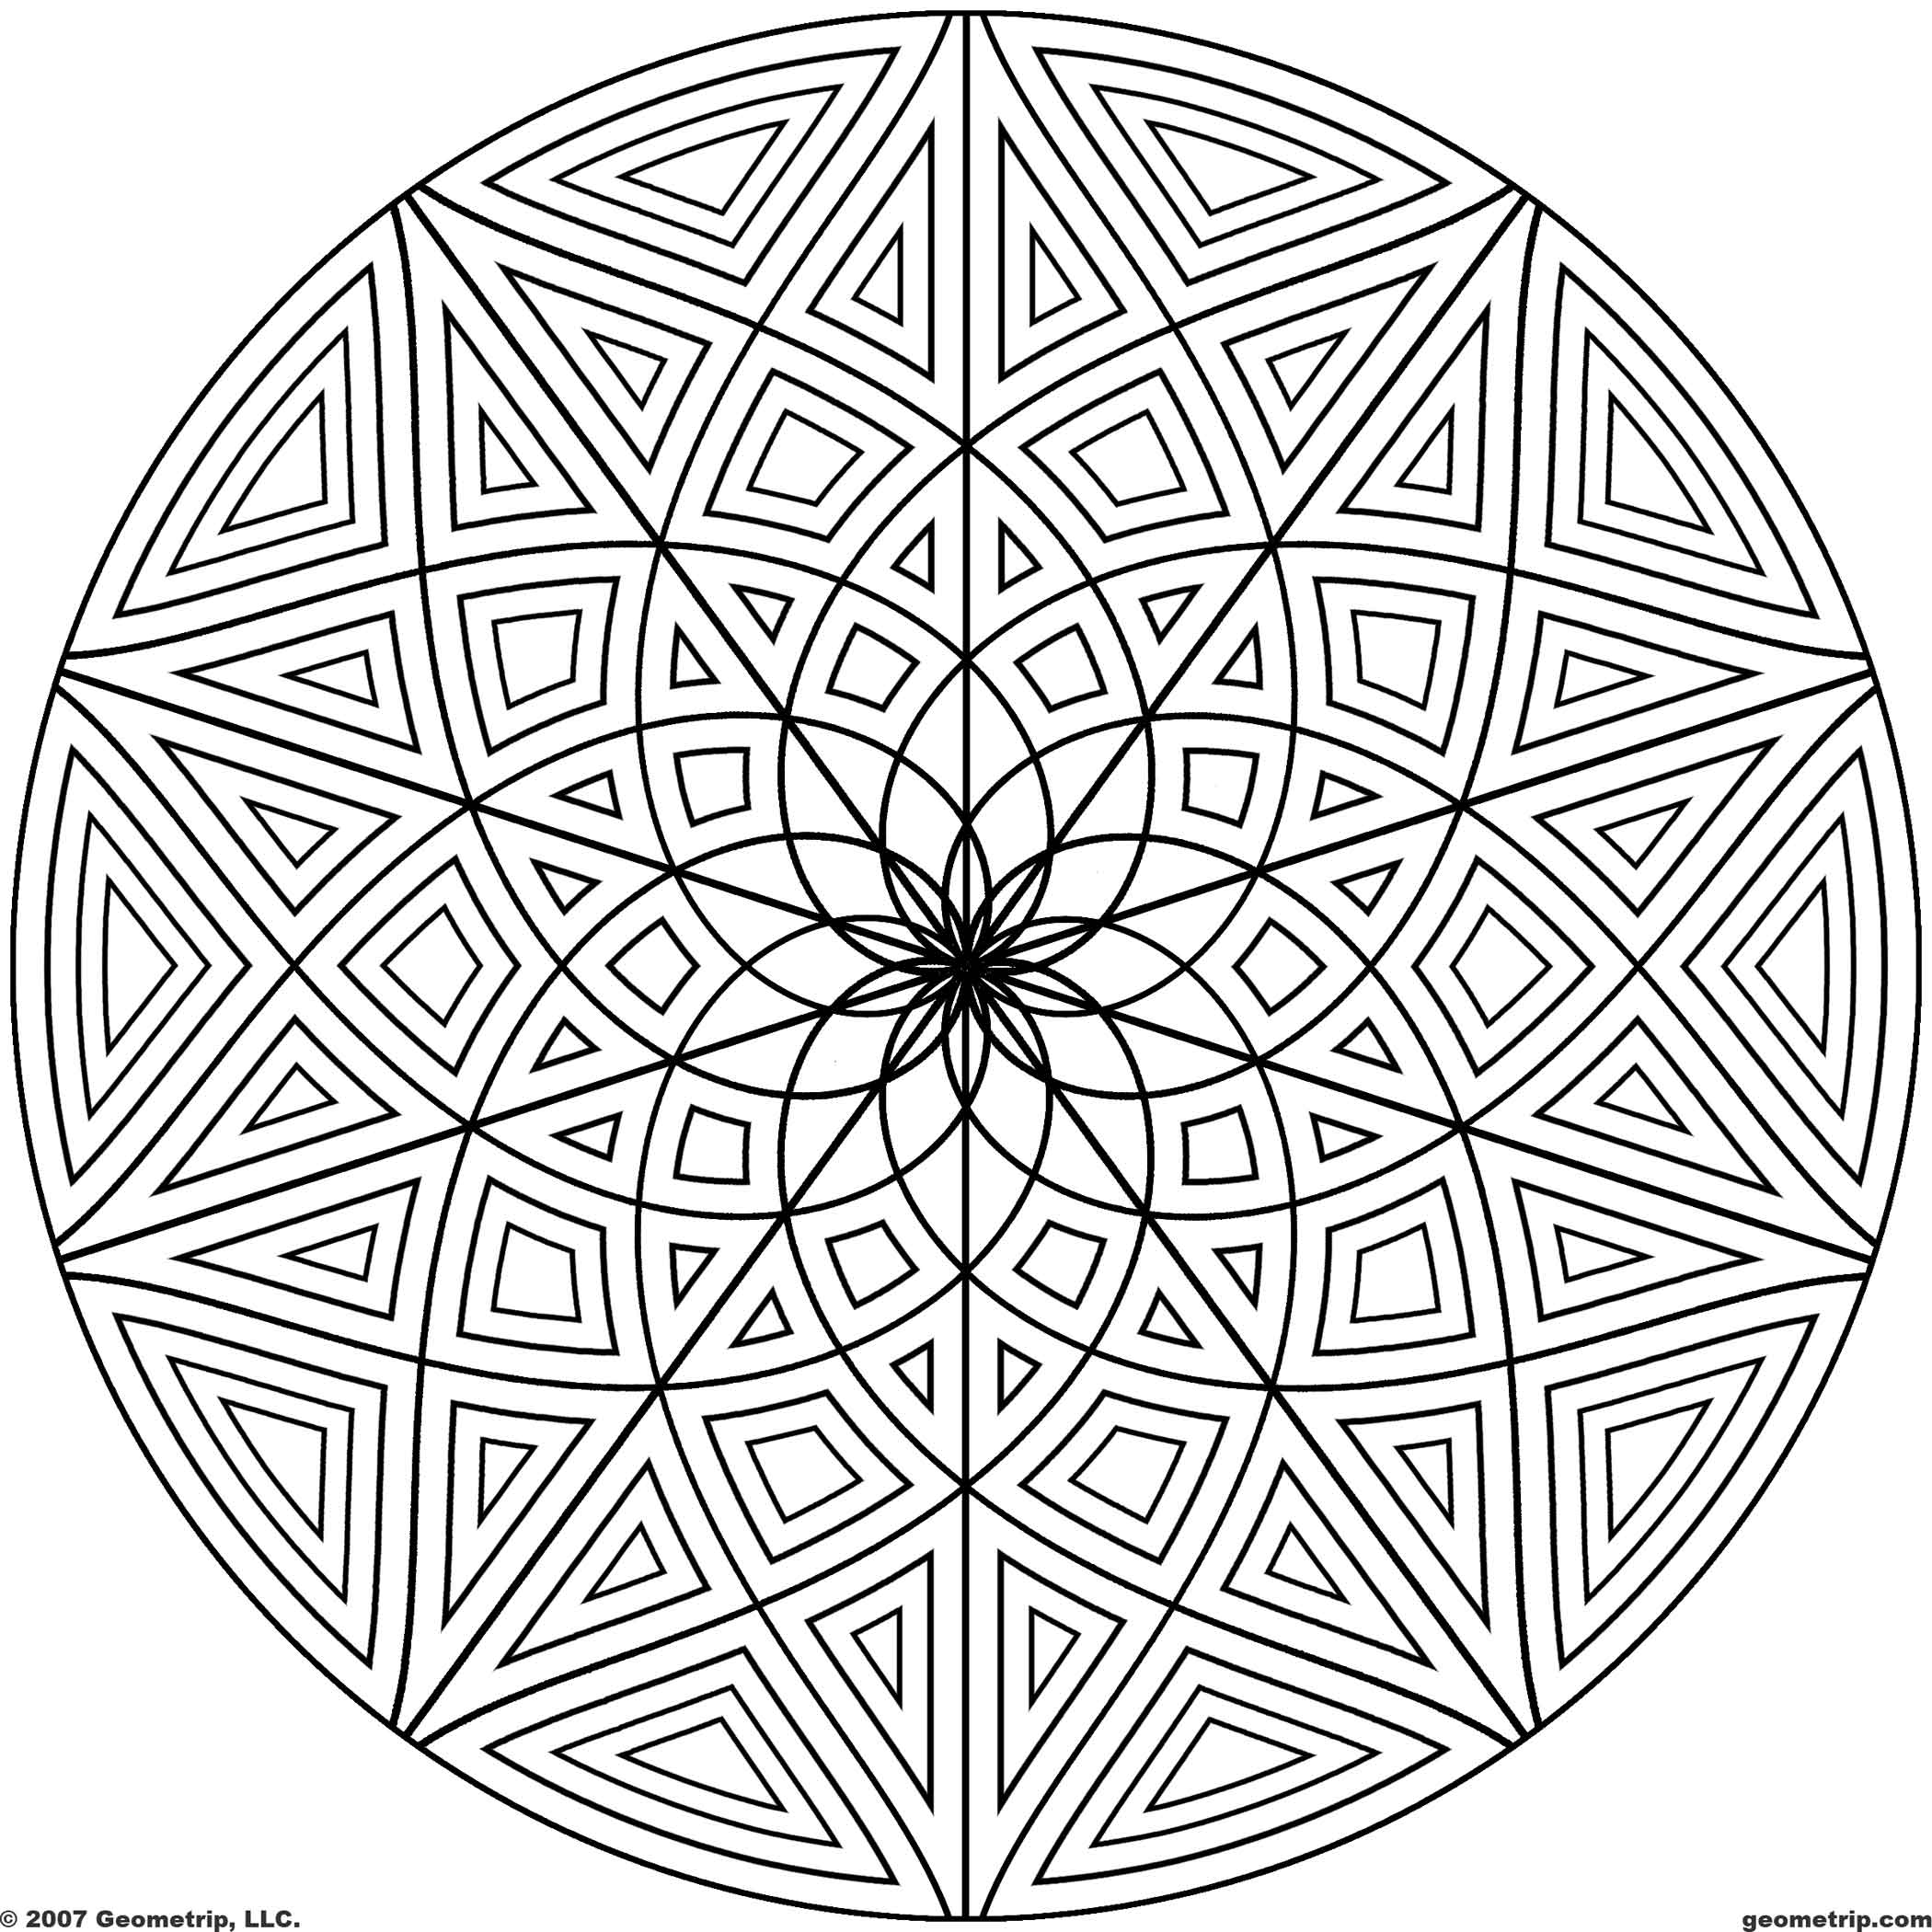 free coloring patterns 17 free design shapes images free vector shapes free free coloring patterns